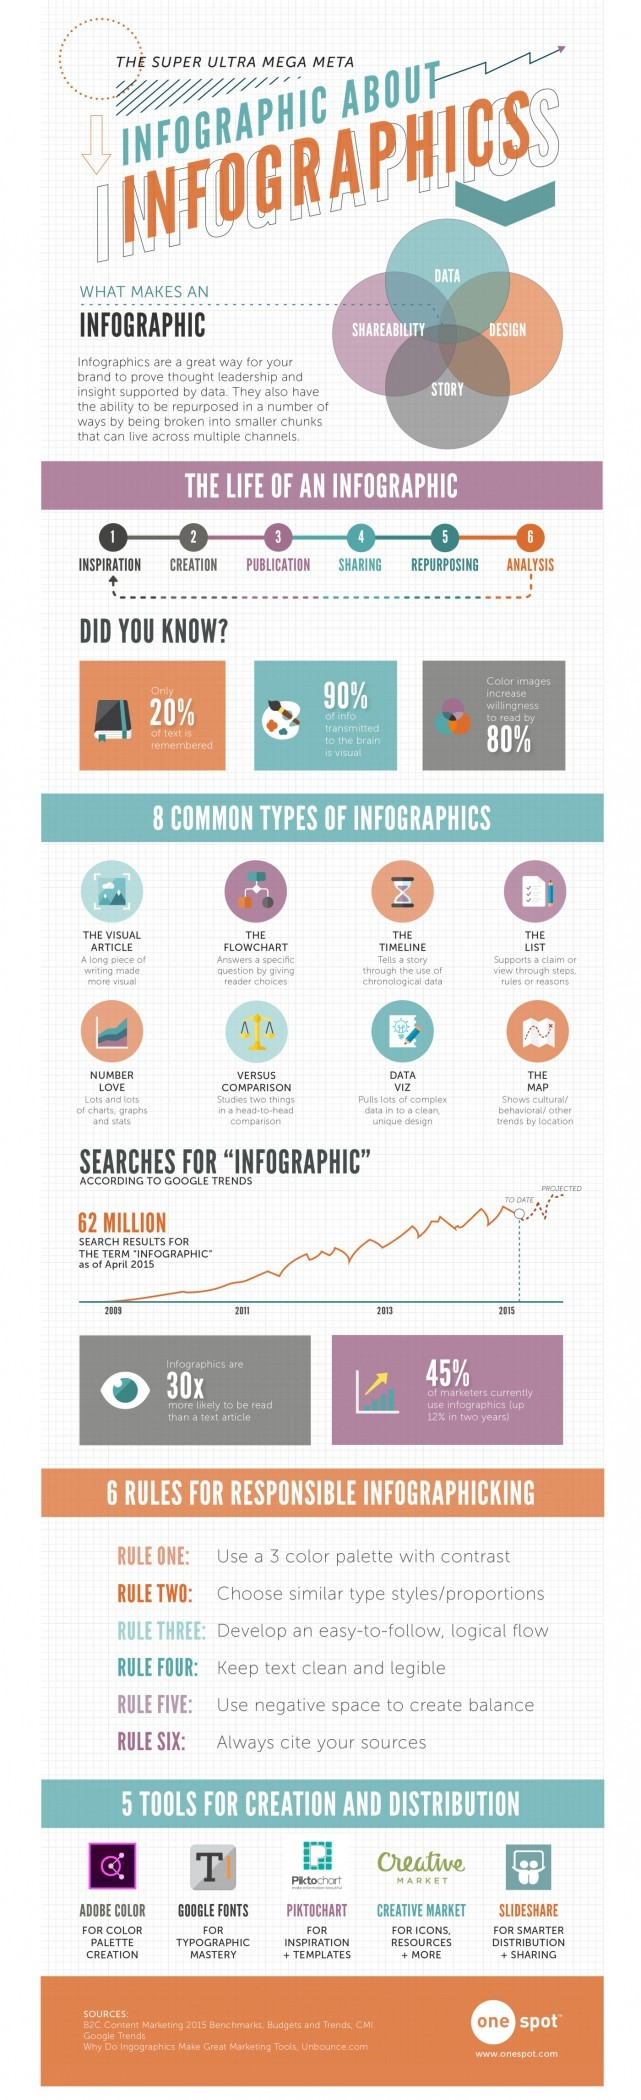 New Infographic Reveals the Value of…Infographics!   PRNewser